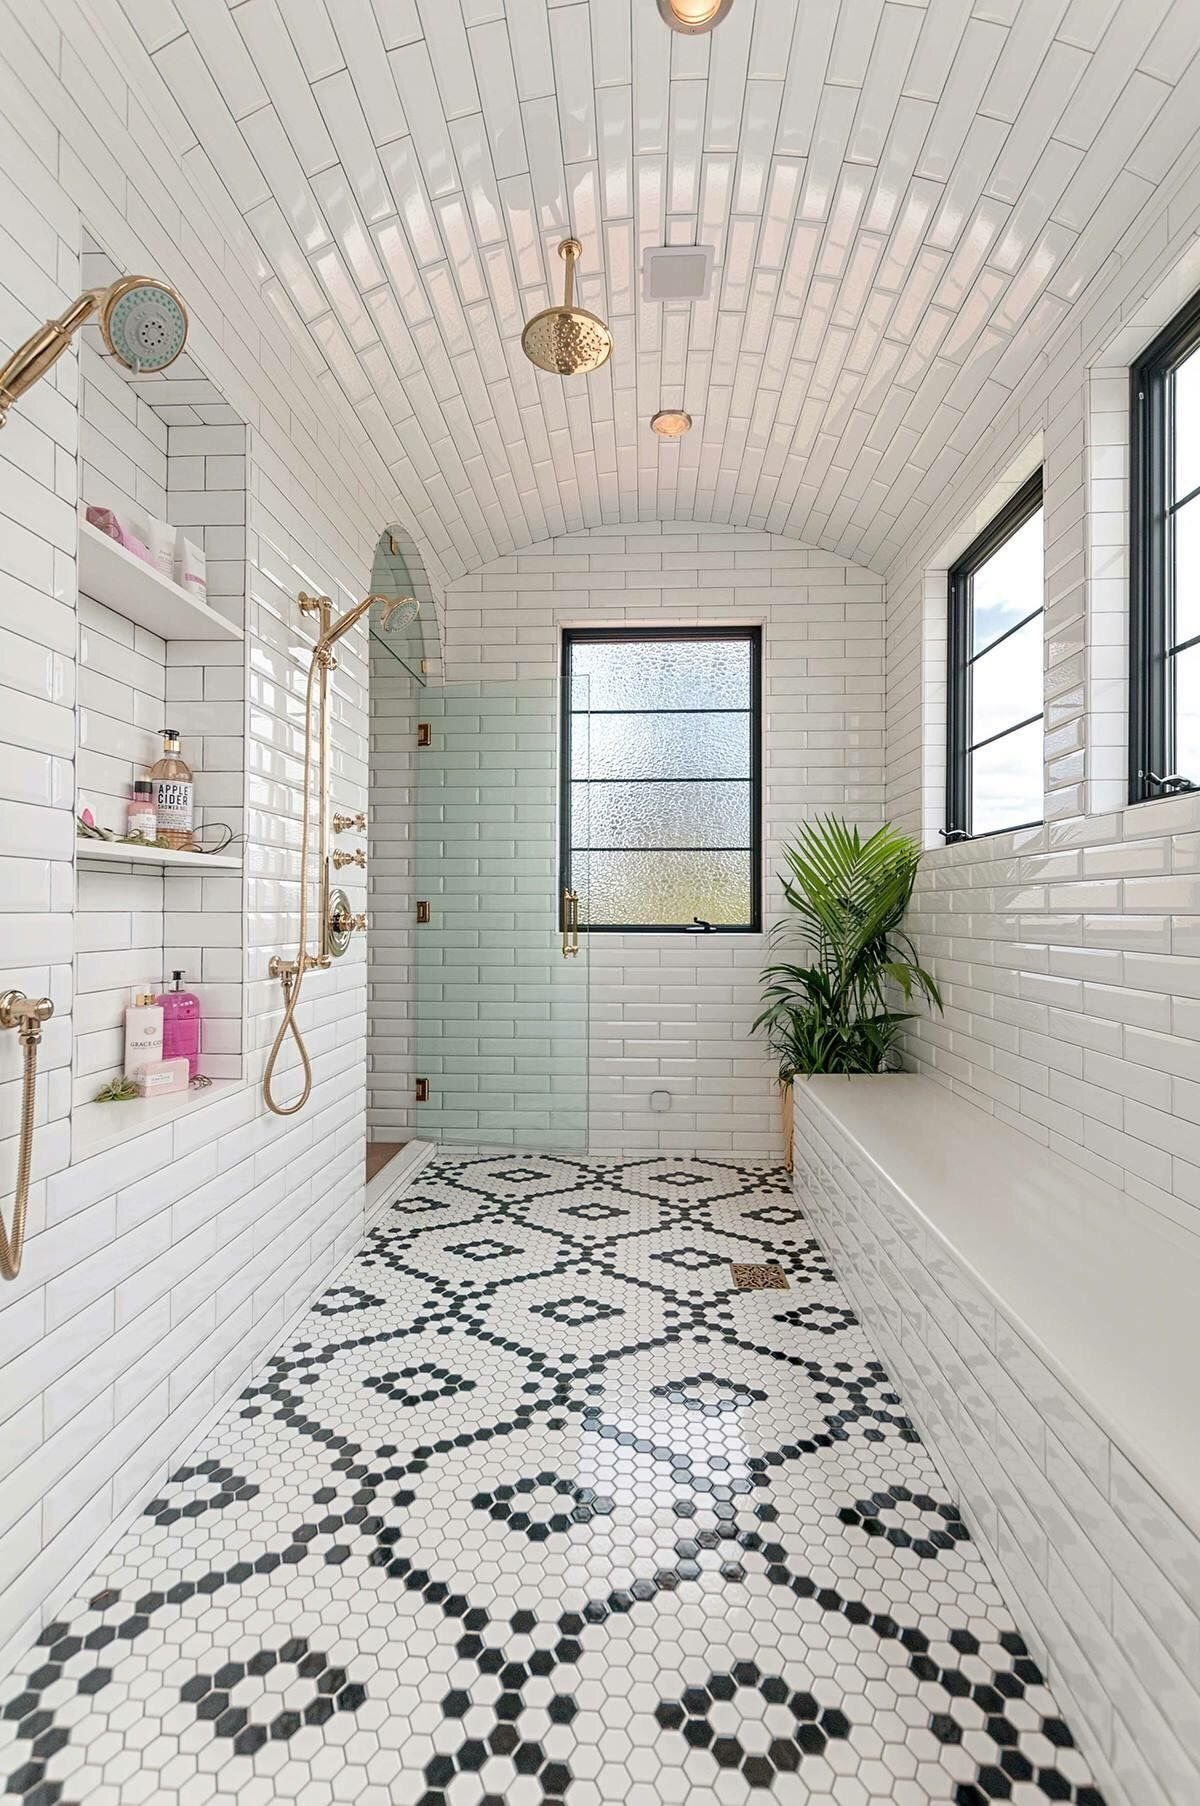 The White Tiles Showcase The Arched Ceiling And With A Monochrome Mosaic Floor Bathroom Tile Designs Dream Bathrooms House Design